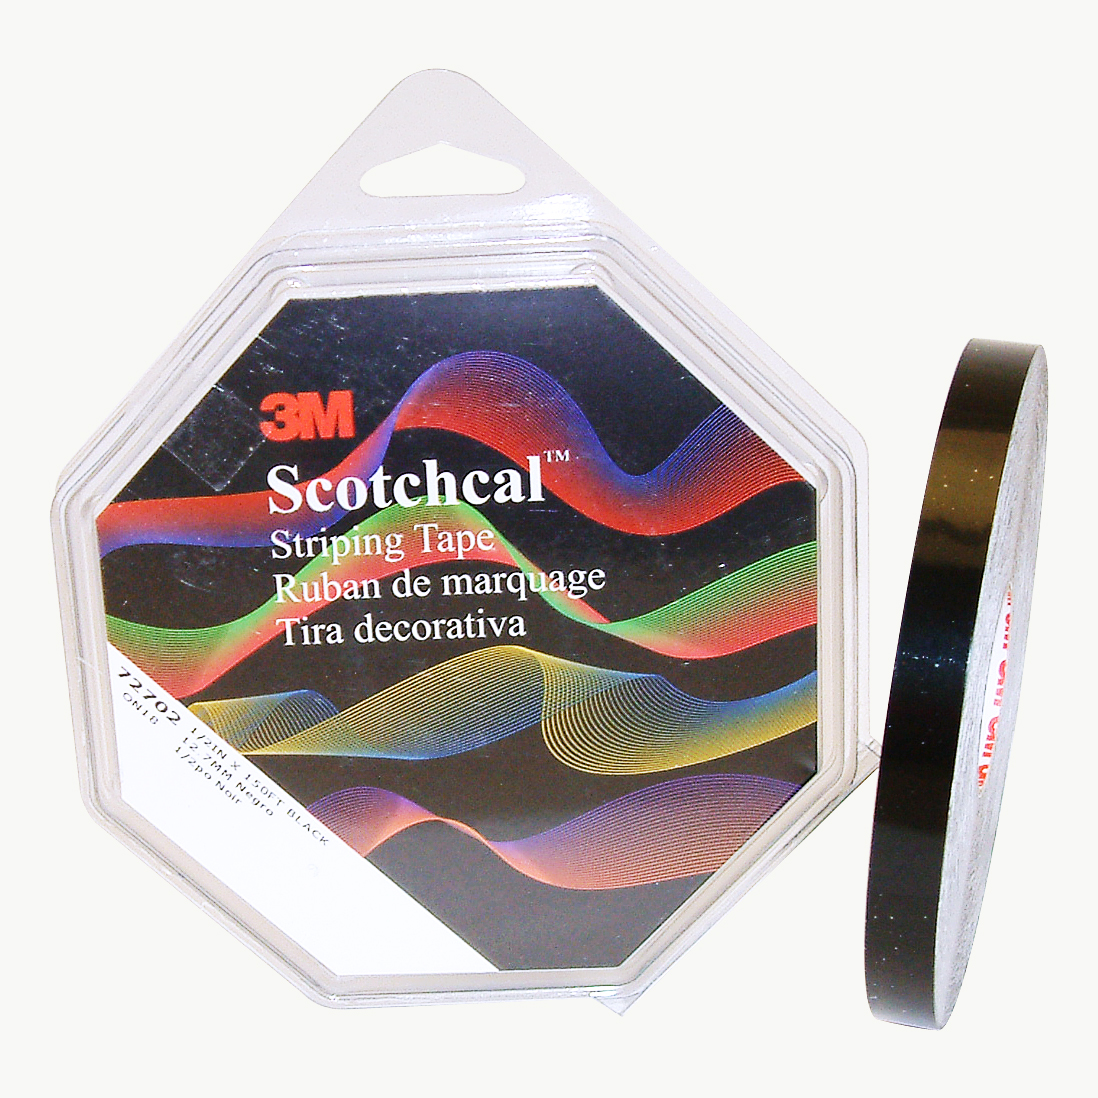 Image of 3M Scotch Scotchcal Striping Tape: 1/2 in. x 50 yds. (Black)